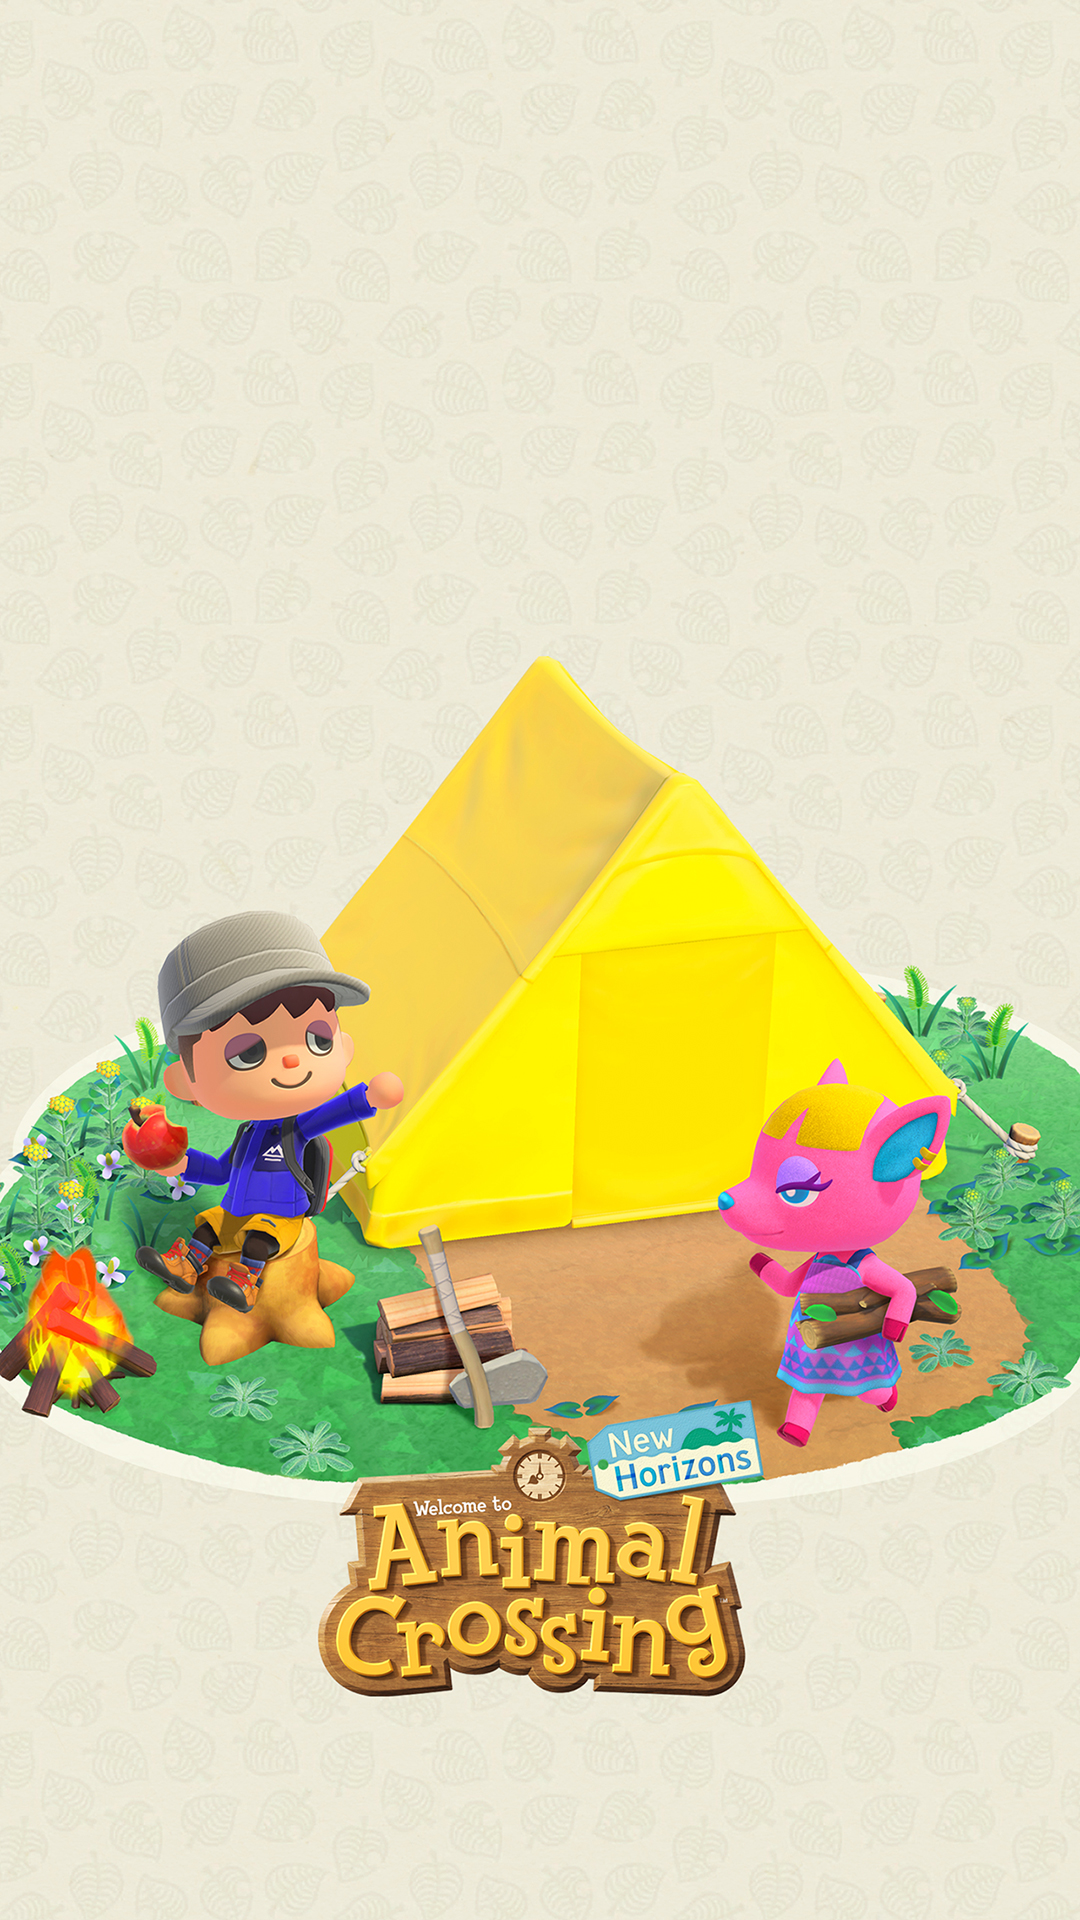 Animal Crossing New Horizons Camping Wallpaper | Cat with ...